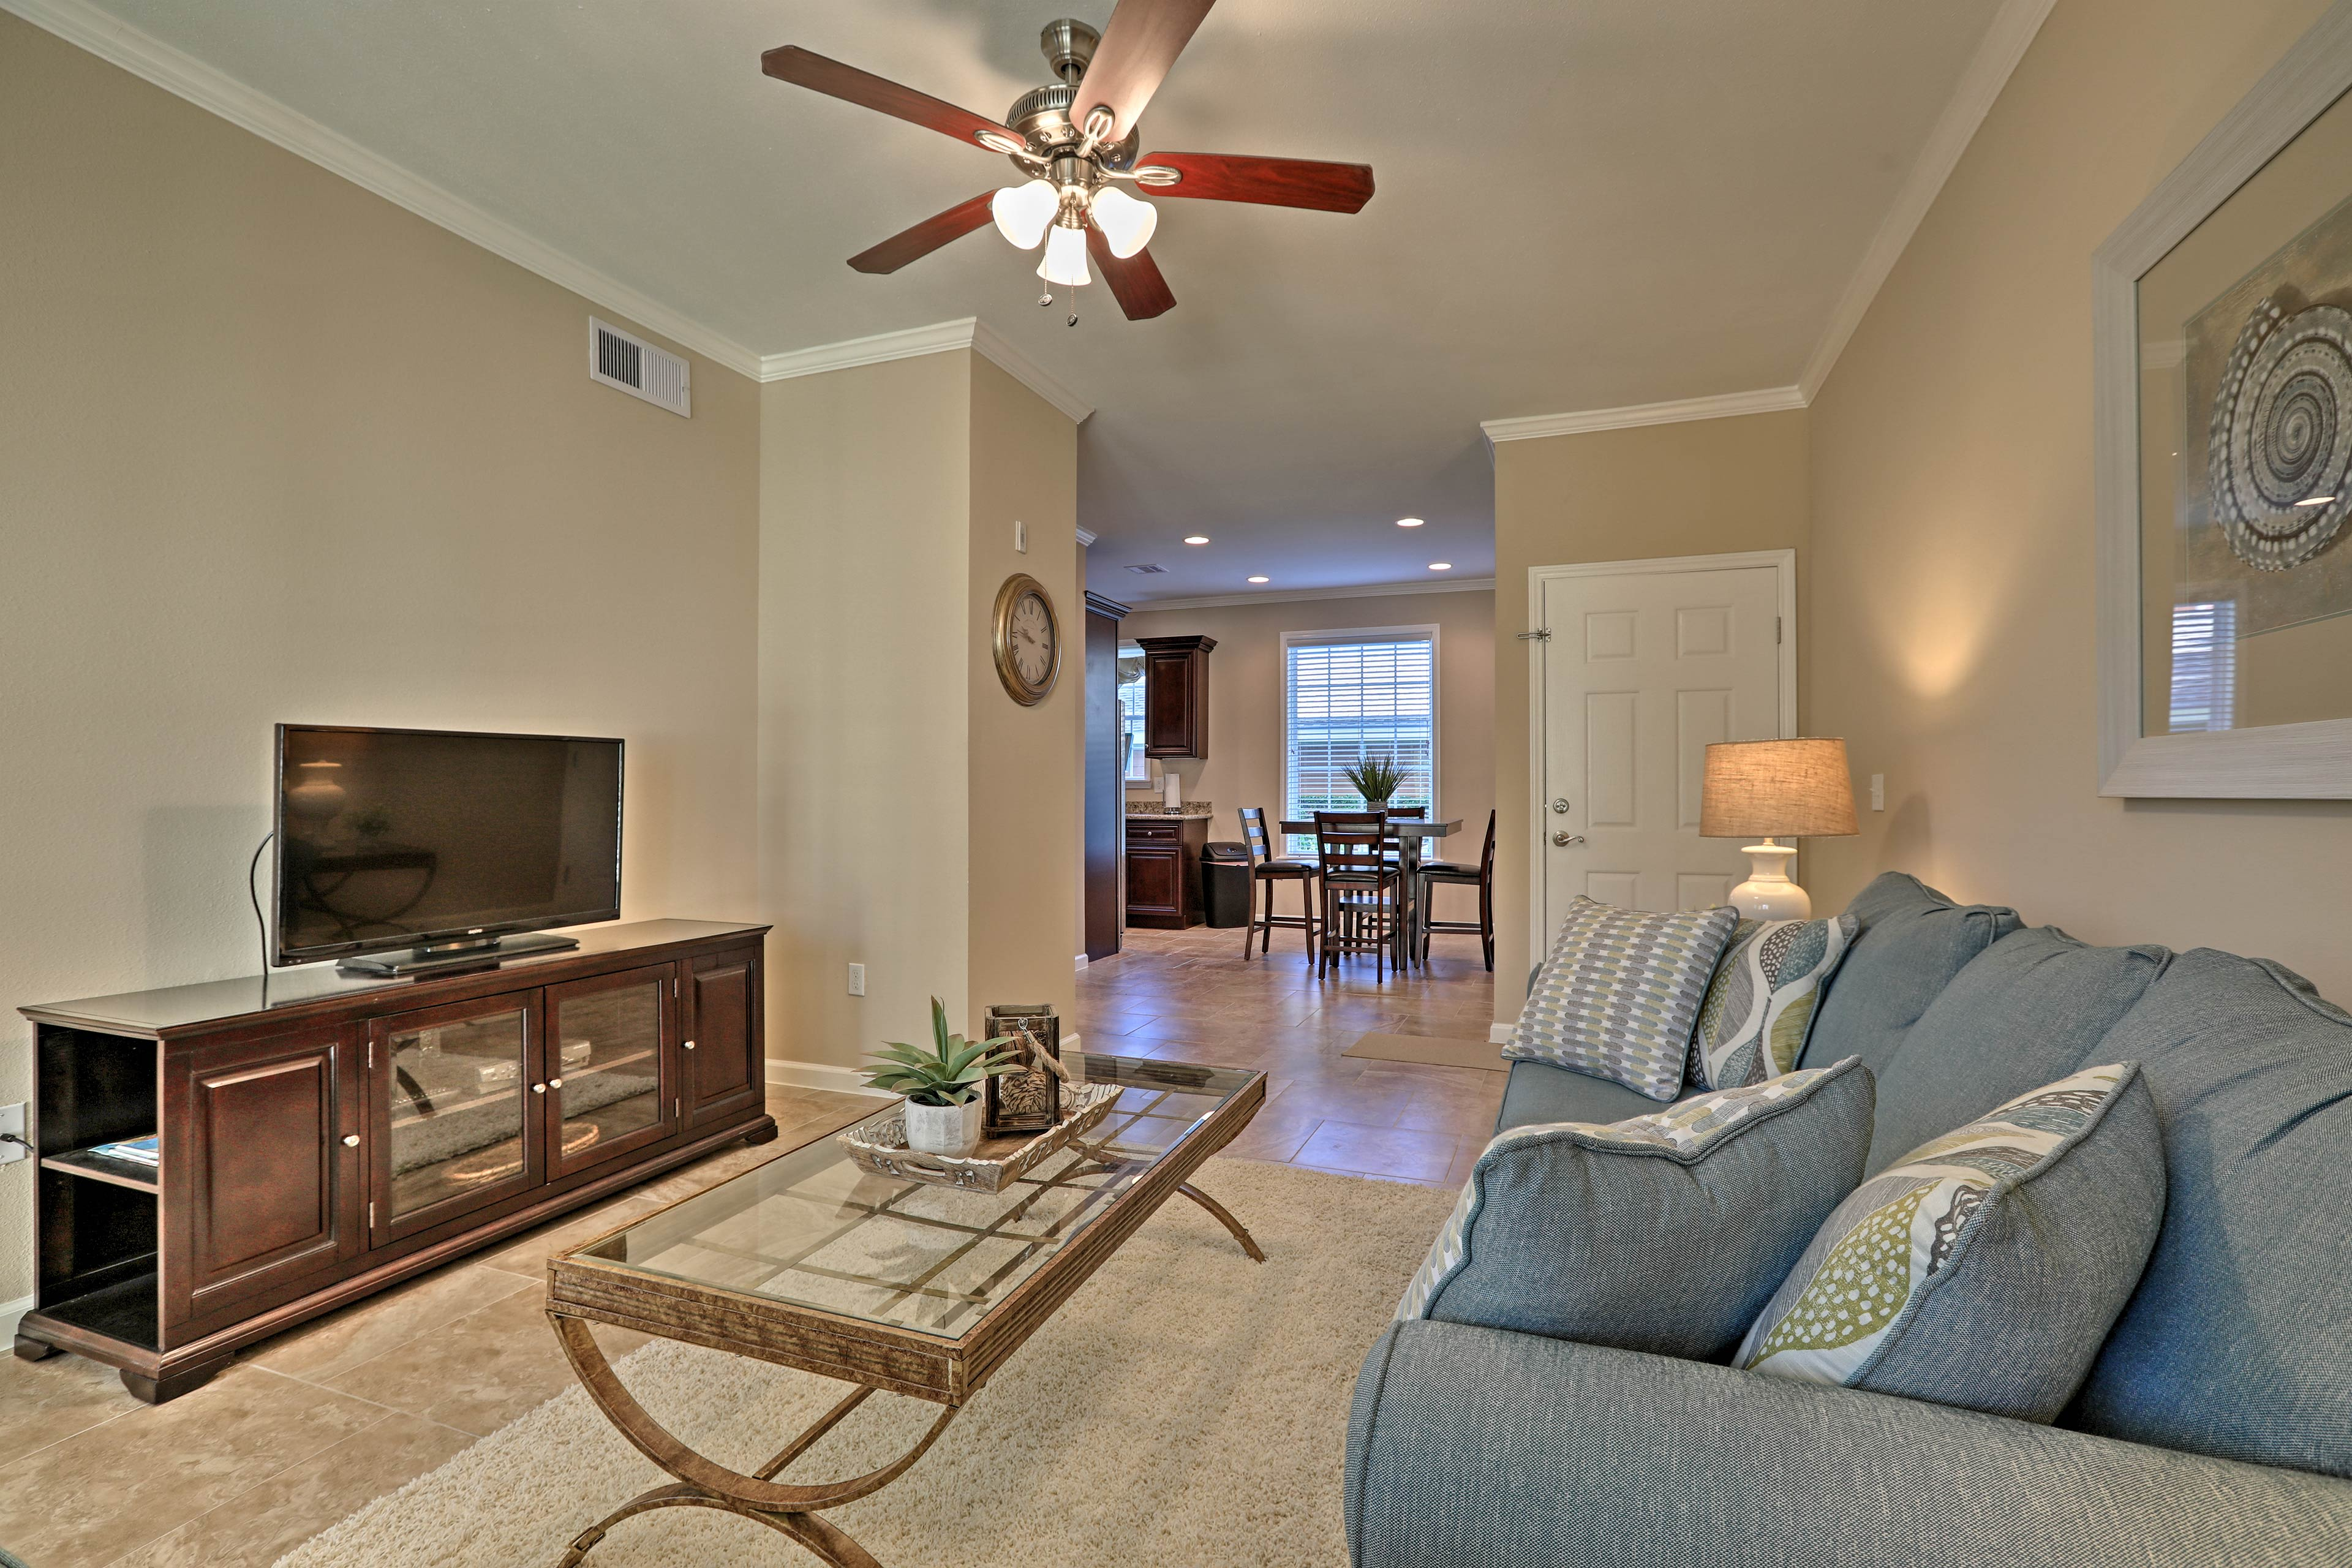 The spacious living area is the perfect area to convene as a family.